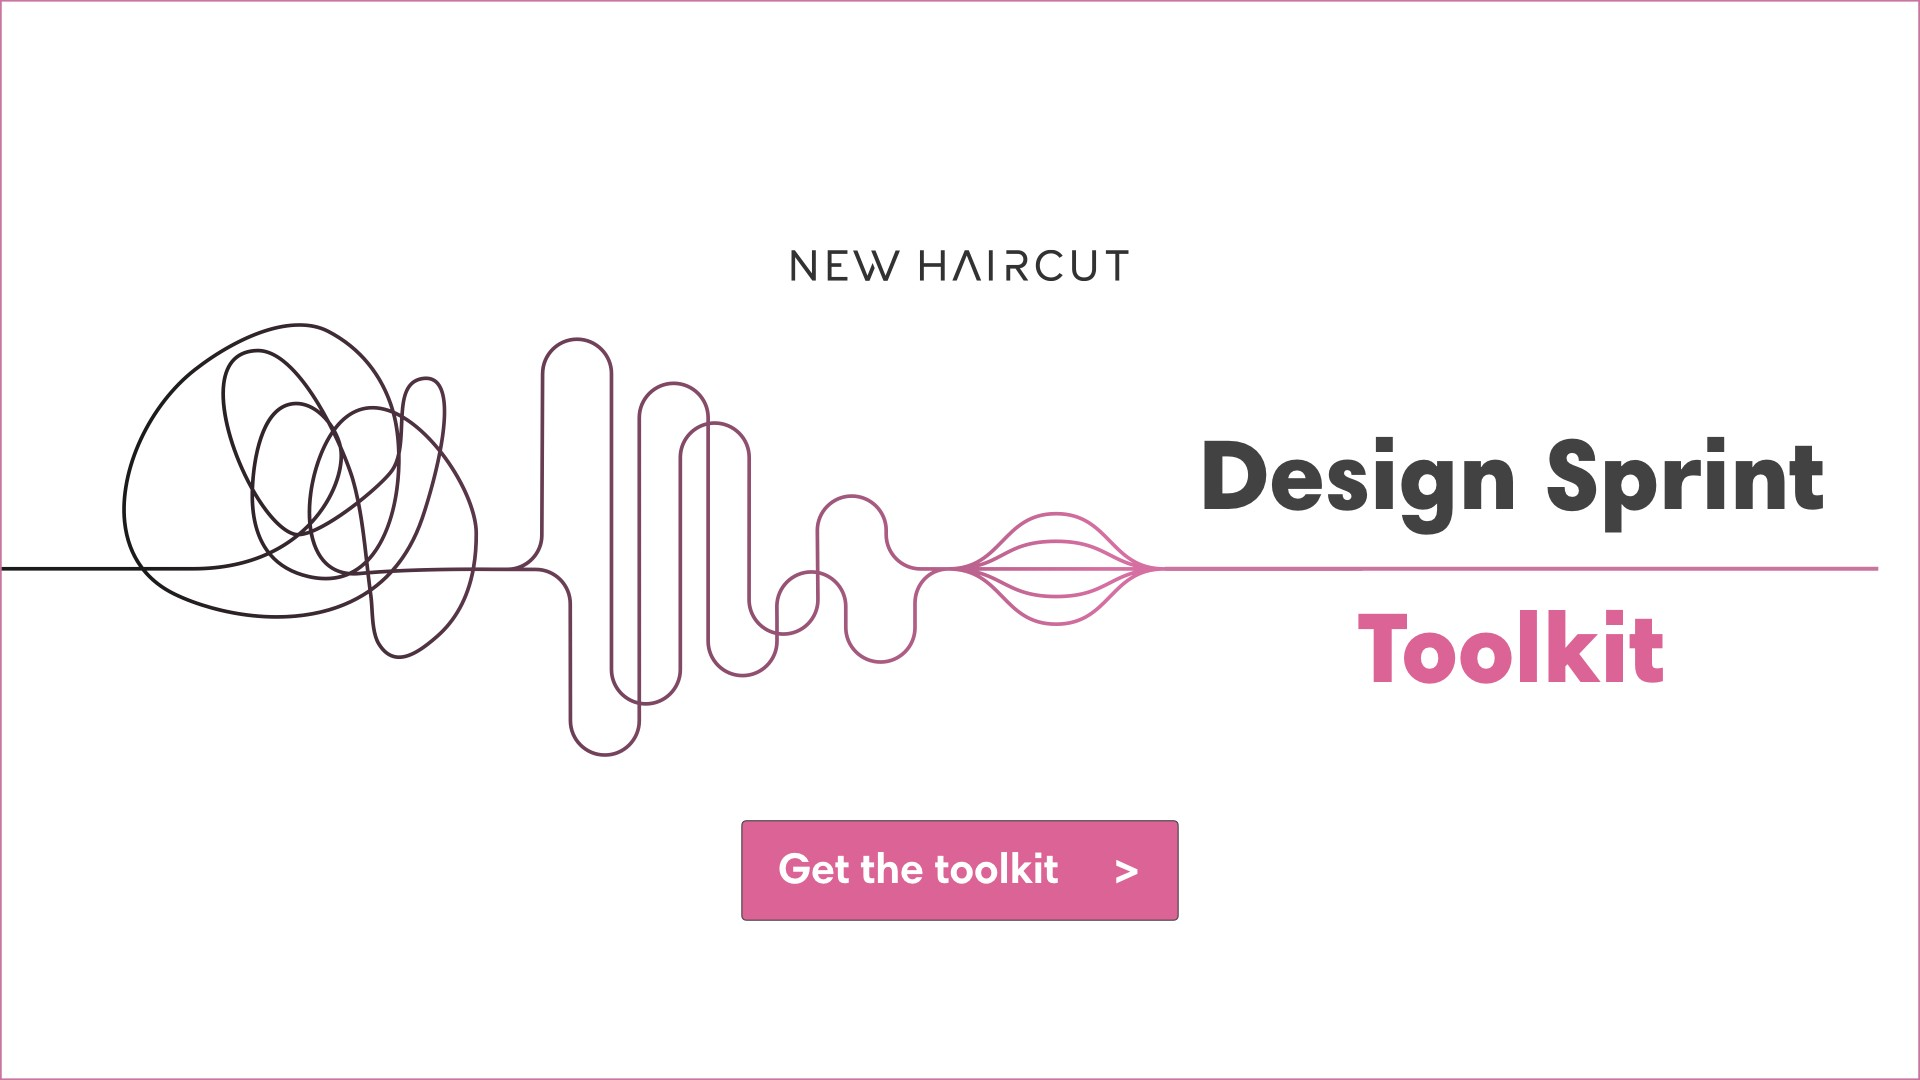 Design Sprint Toolkit by New Haircut